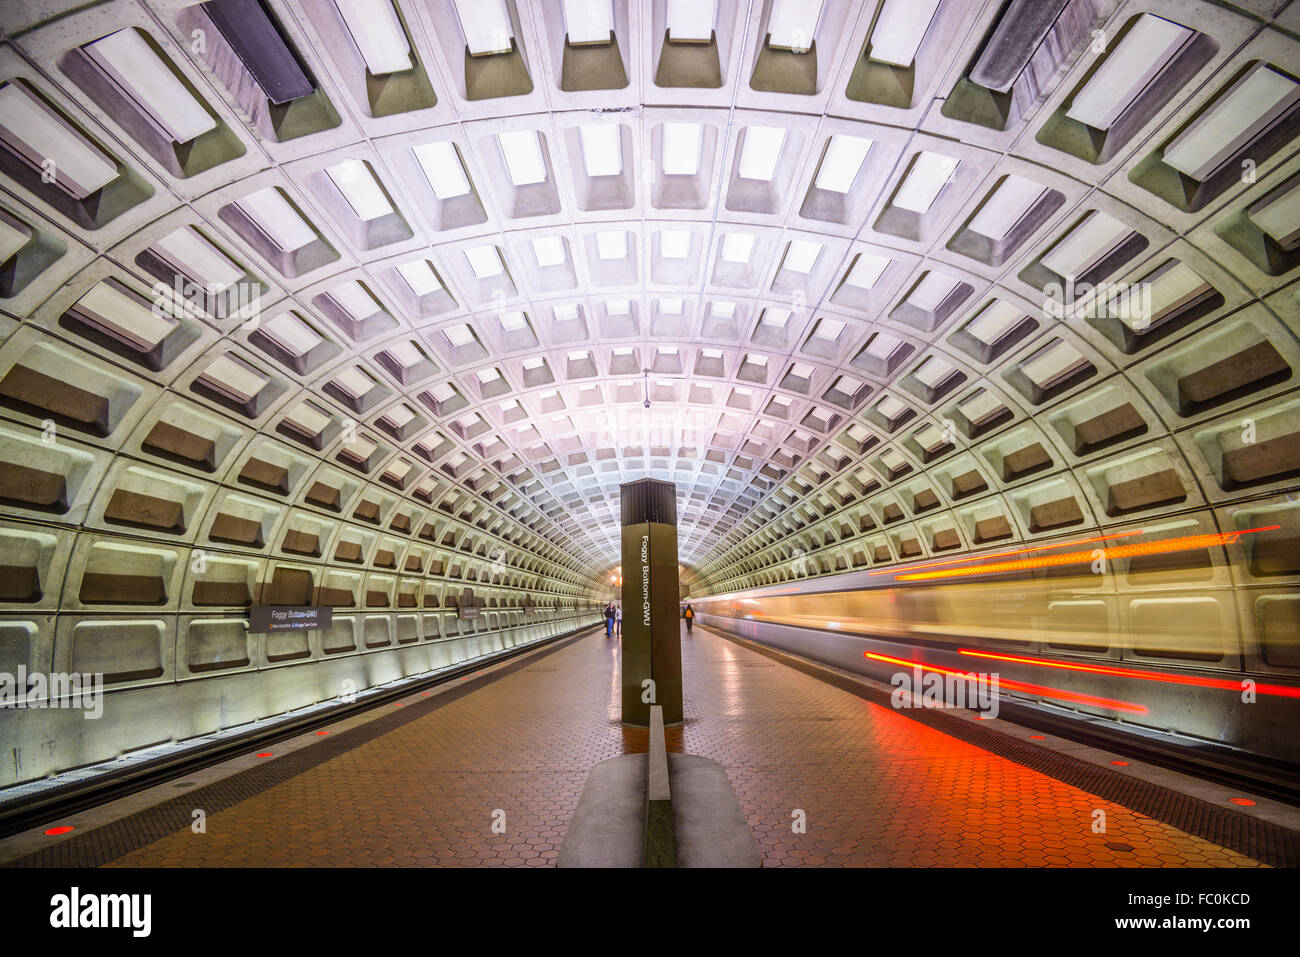 WASHINGTON, D.C. - APRIL 10, 2015: Trains and passengers in a Metro Station. Opened in 1976, the Washington Metro - Stock Image